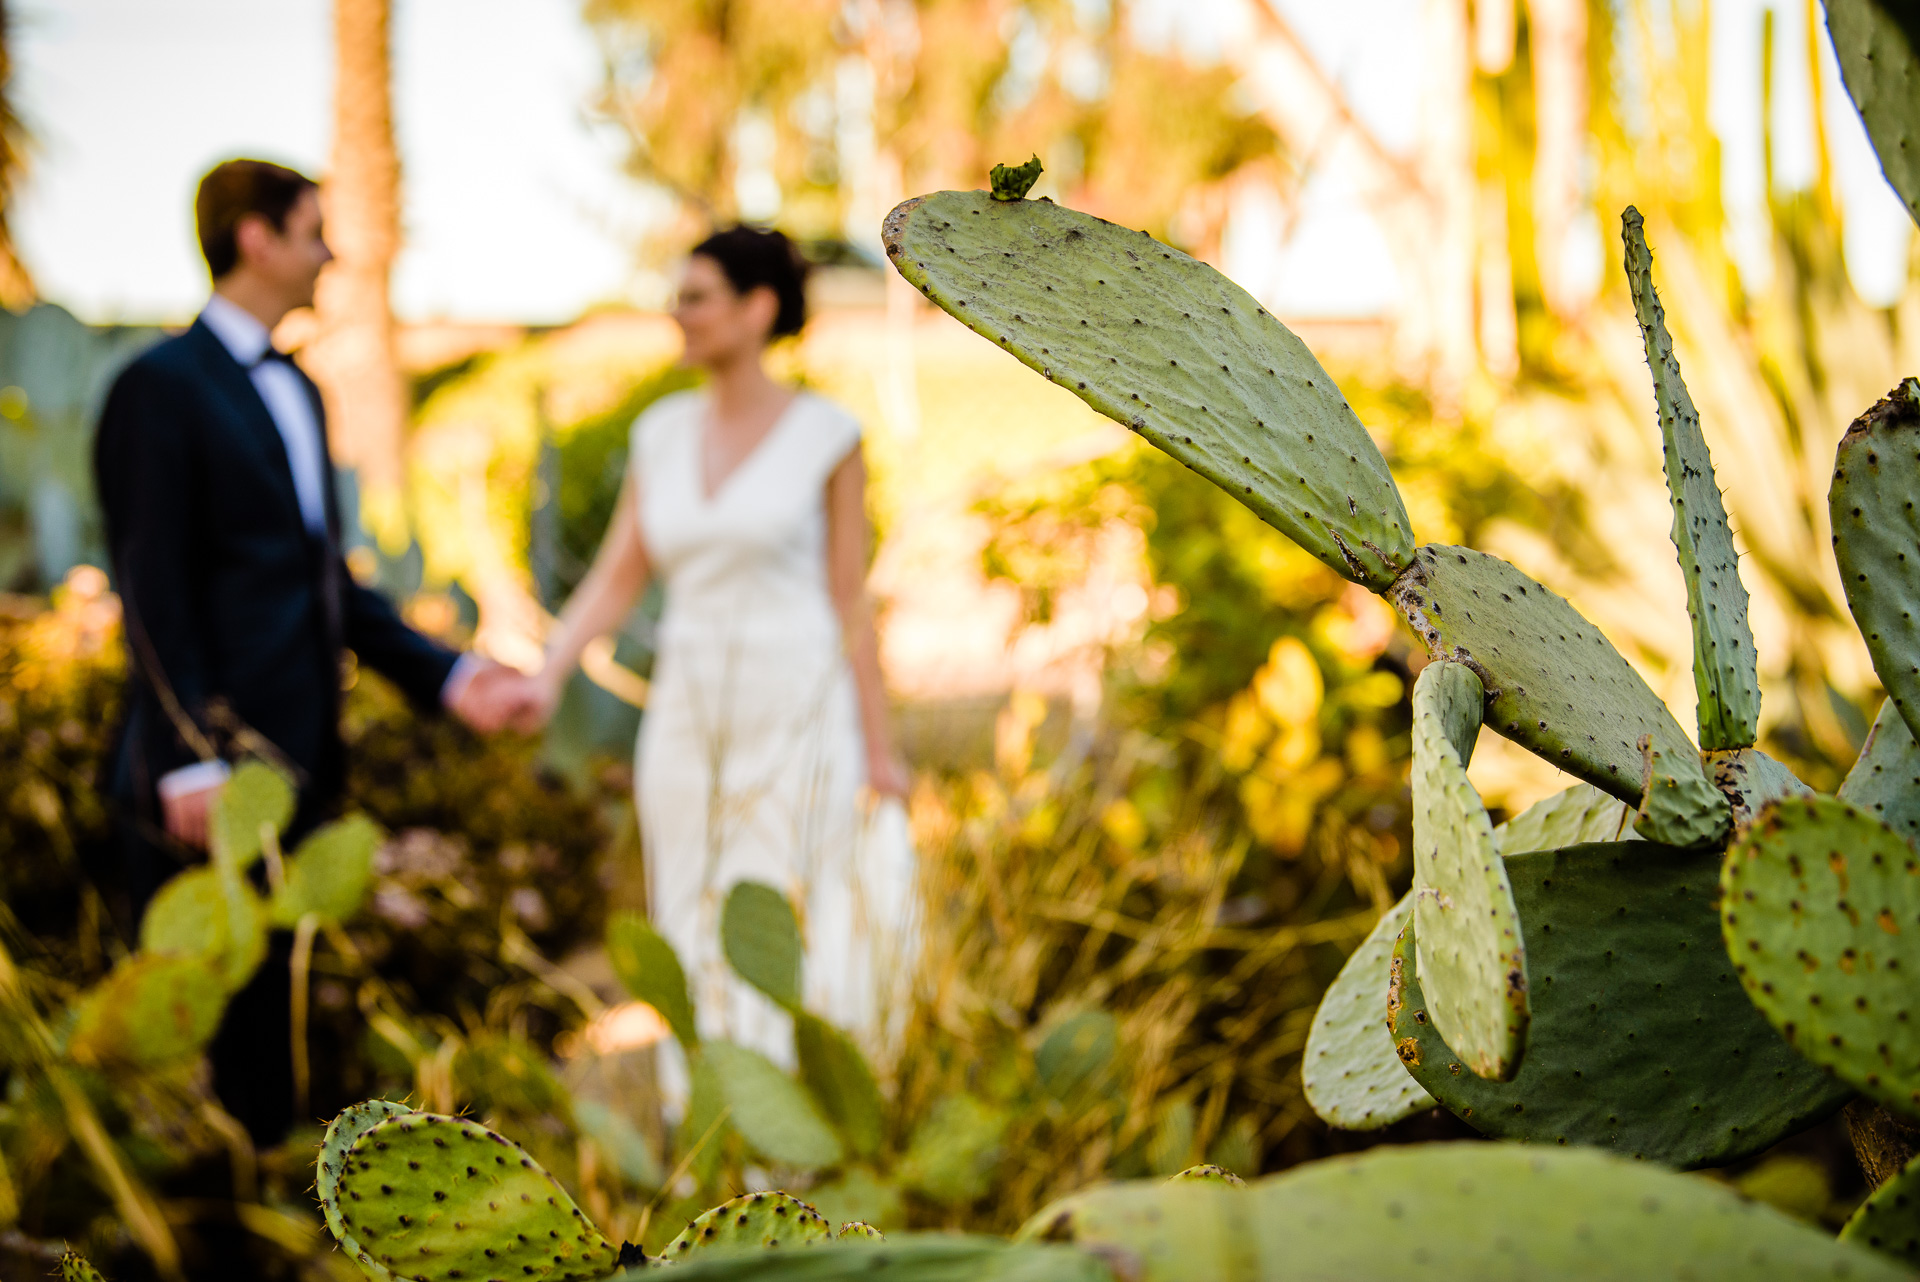 12.29.17 - Michelle and Tommaso Wedding - San Diego Courthouse -  Paul Douda Photography - 065.jpg